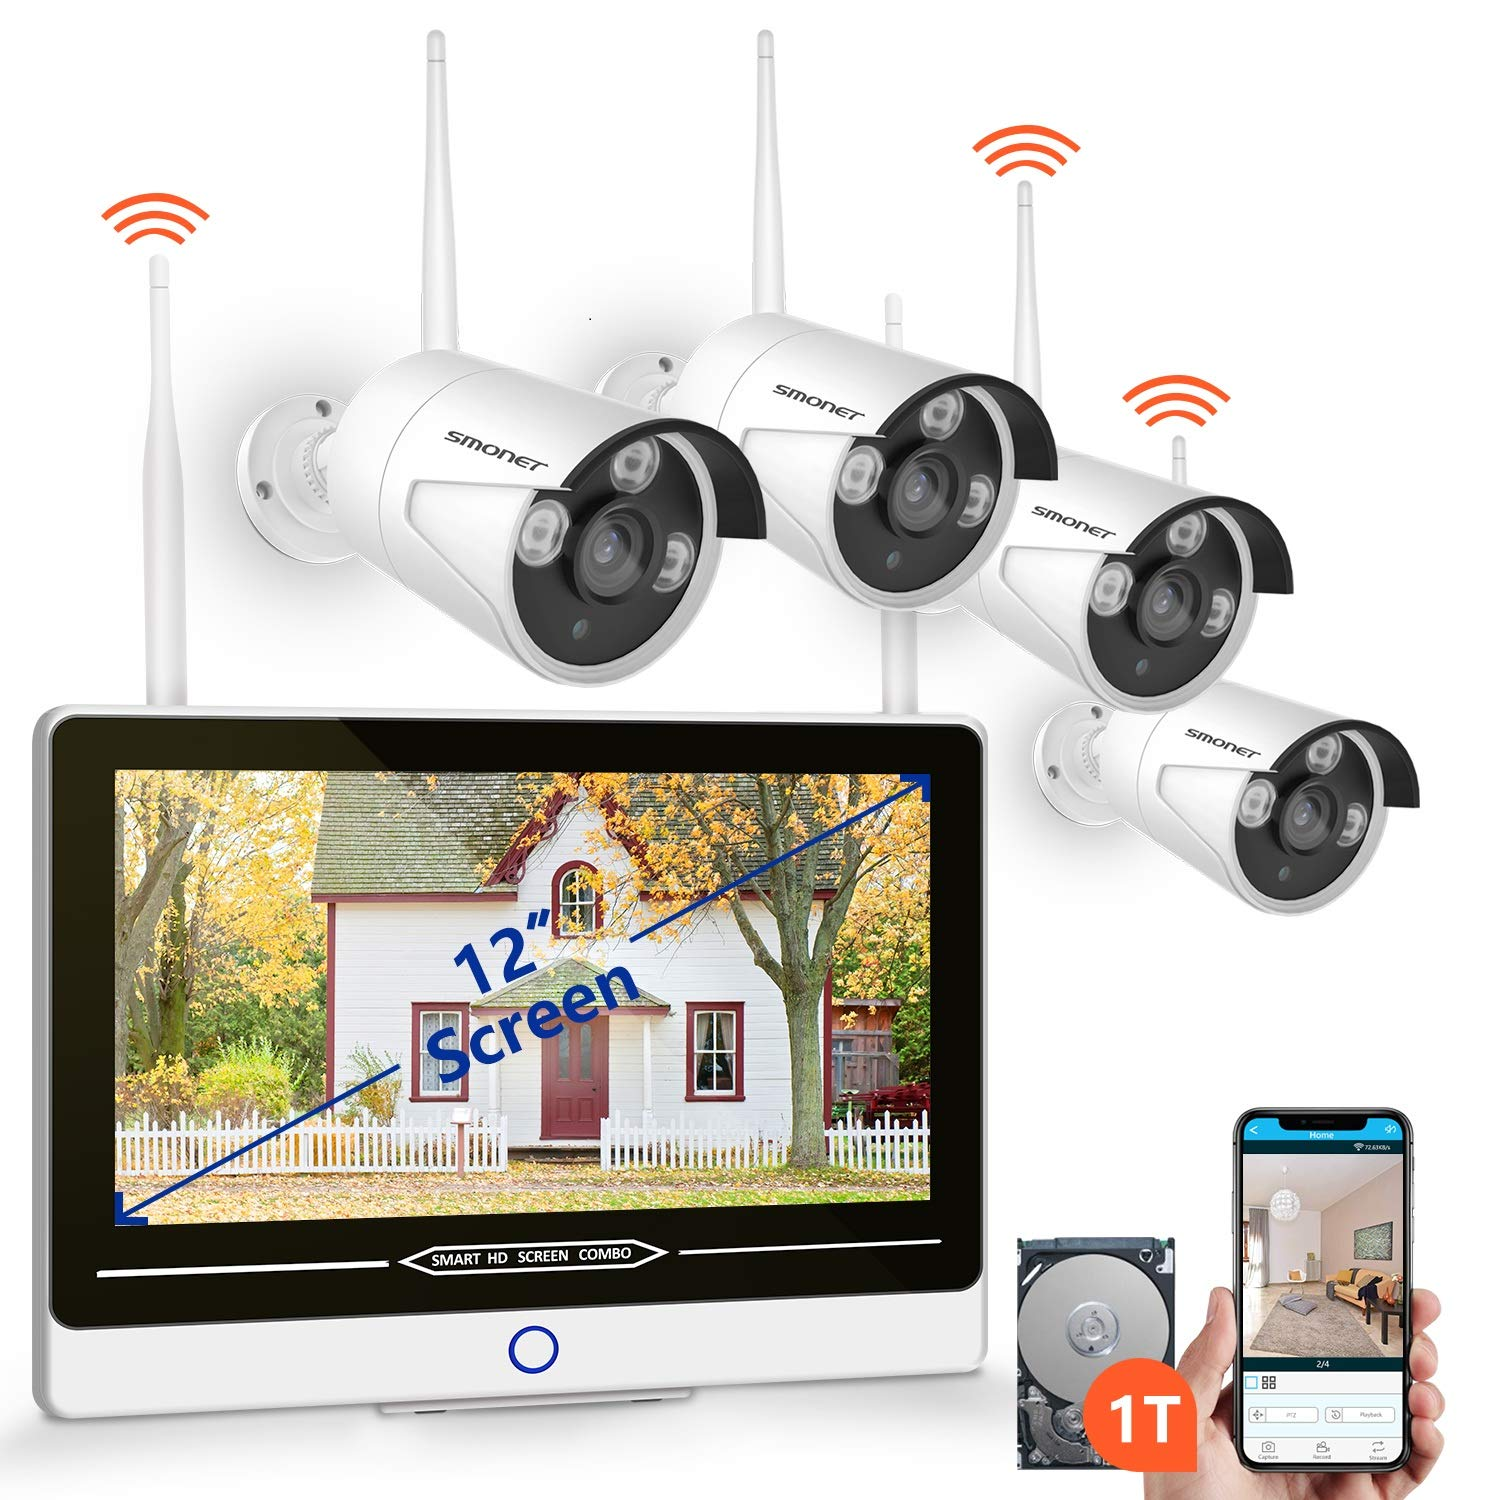 【2019 NEW】All in One with 12'' Monitor Security Camera System Wireless,SMONET 8-Channel 1080P Home Security System (1TB Hard Drive),4pcs 1.3MP Outdoor Wireless IP Cameras,P2P,Easy Remote View,Free APP